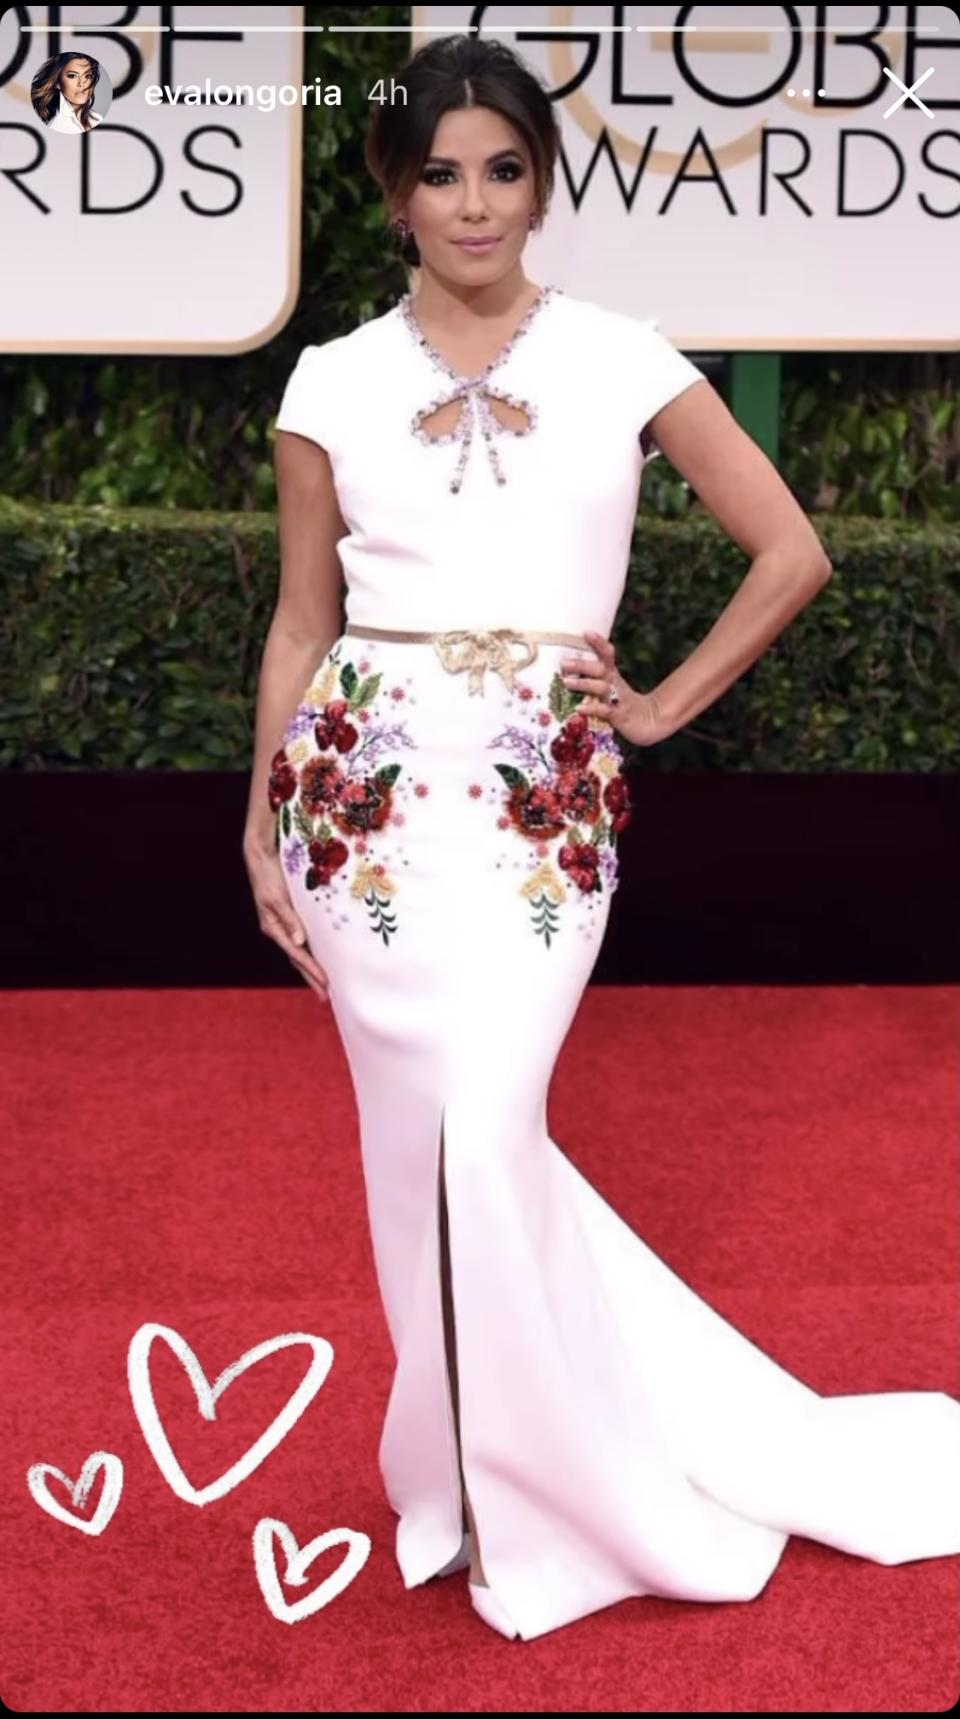 <p>For her final fashion throwback, Longoria showed off a look from the 2016 Golden Globes. It may have been the dead of winter, but her beaded George Hobeika dress had us all dreaming of spring. Image via Instagram/EvaLongoria.</p>